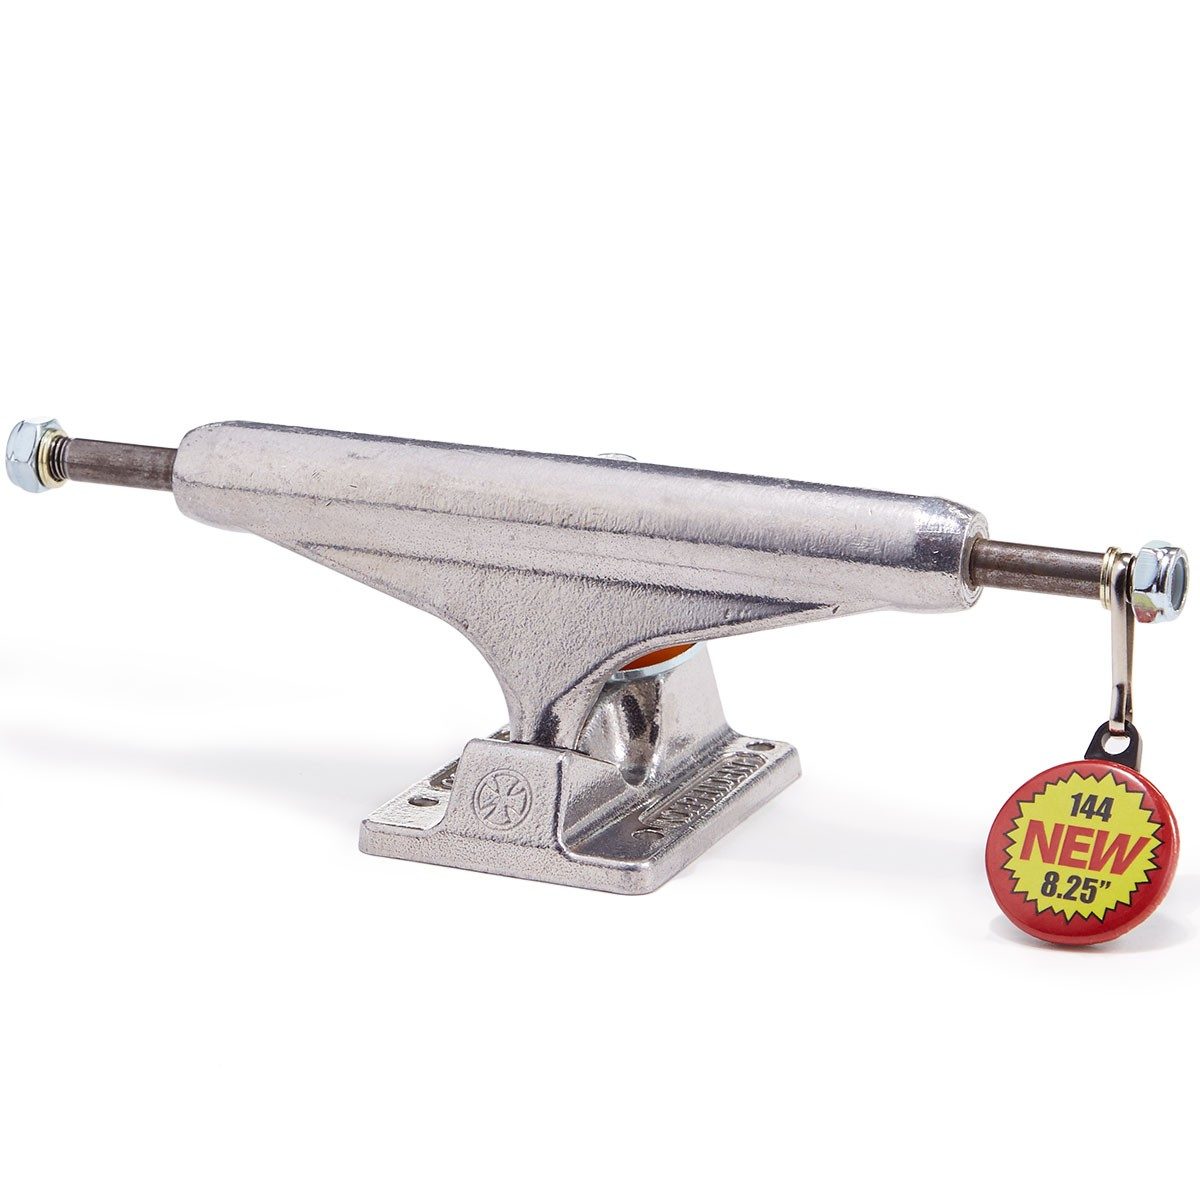 b8b3db7793f Independent 144 Silver Skateboard Trucks - 144mm